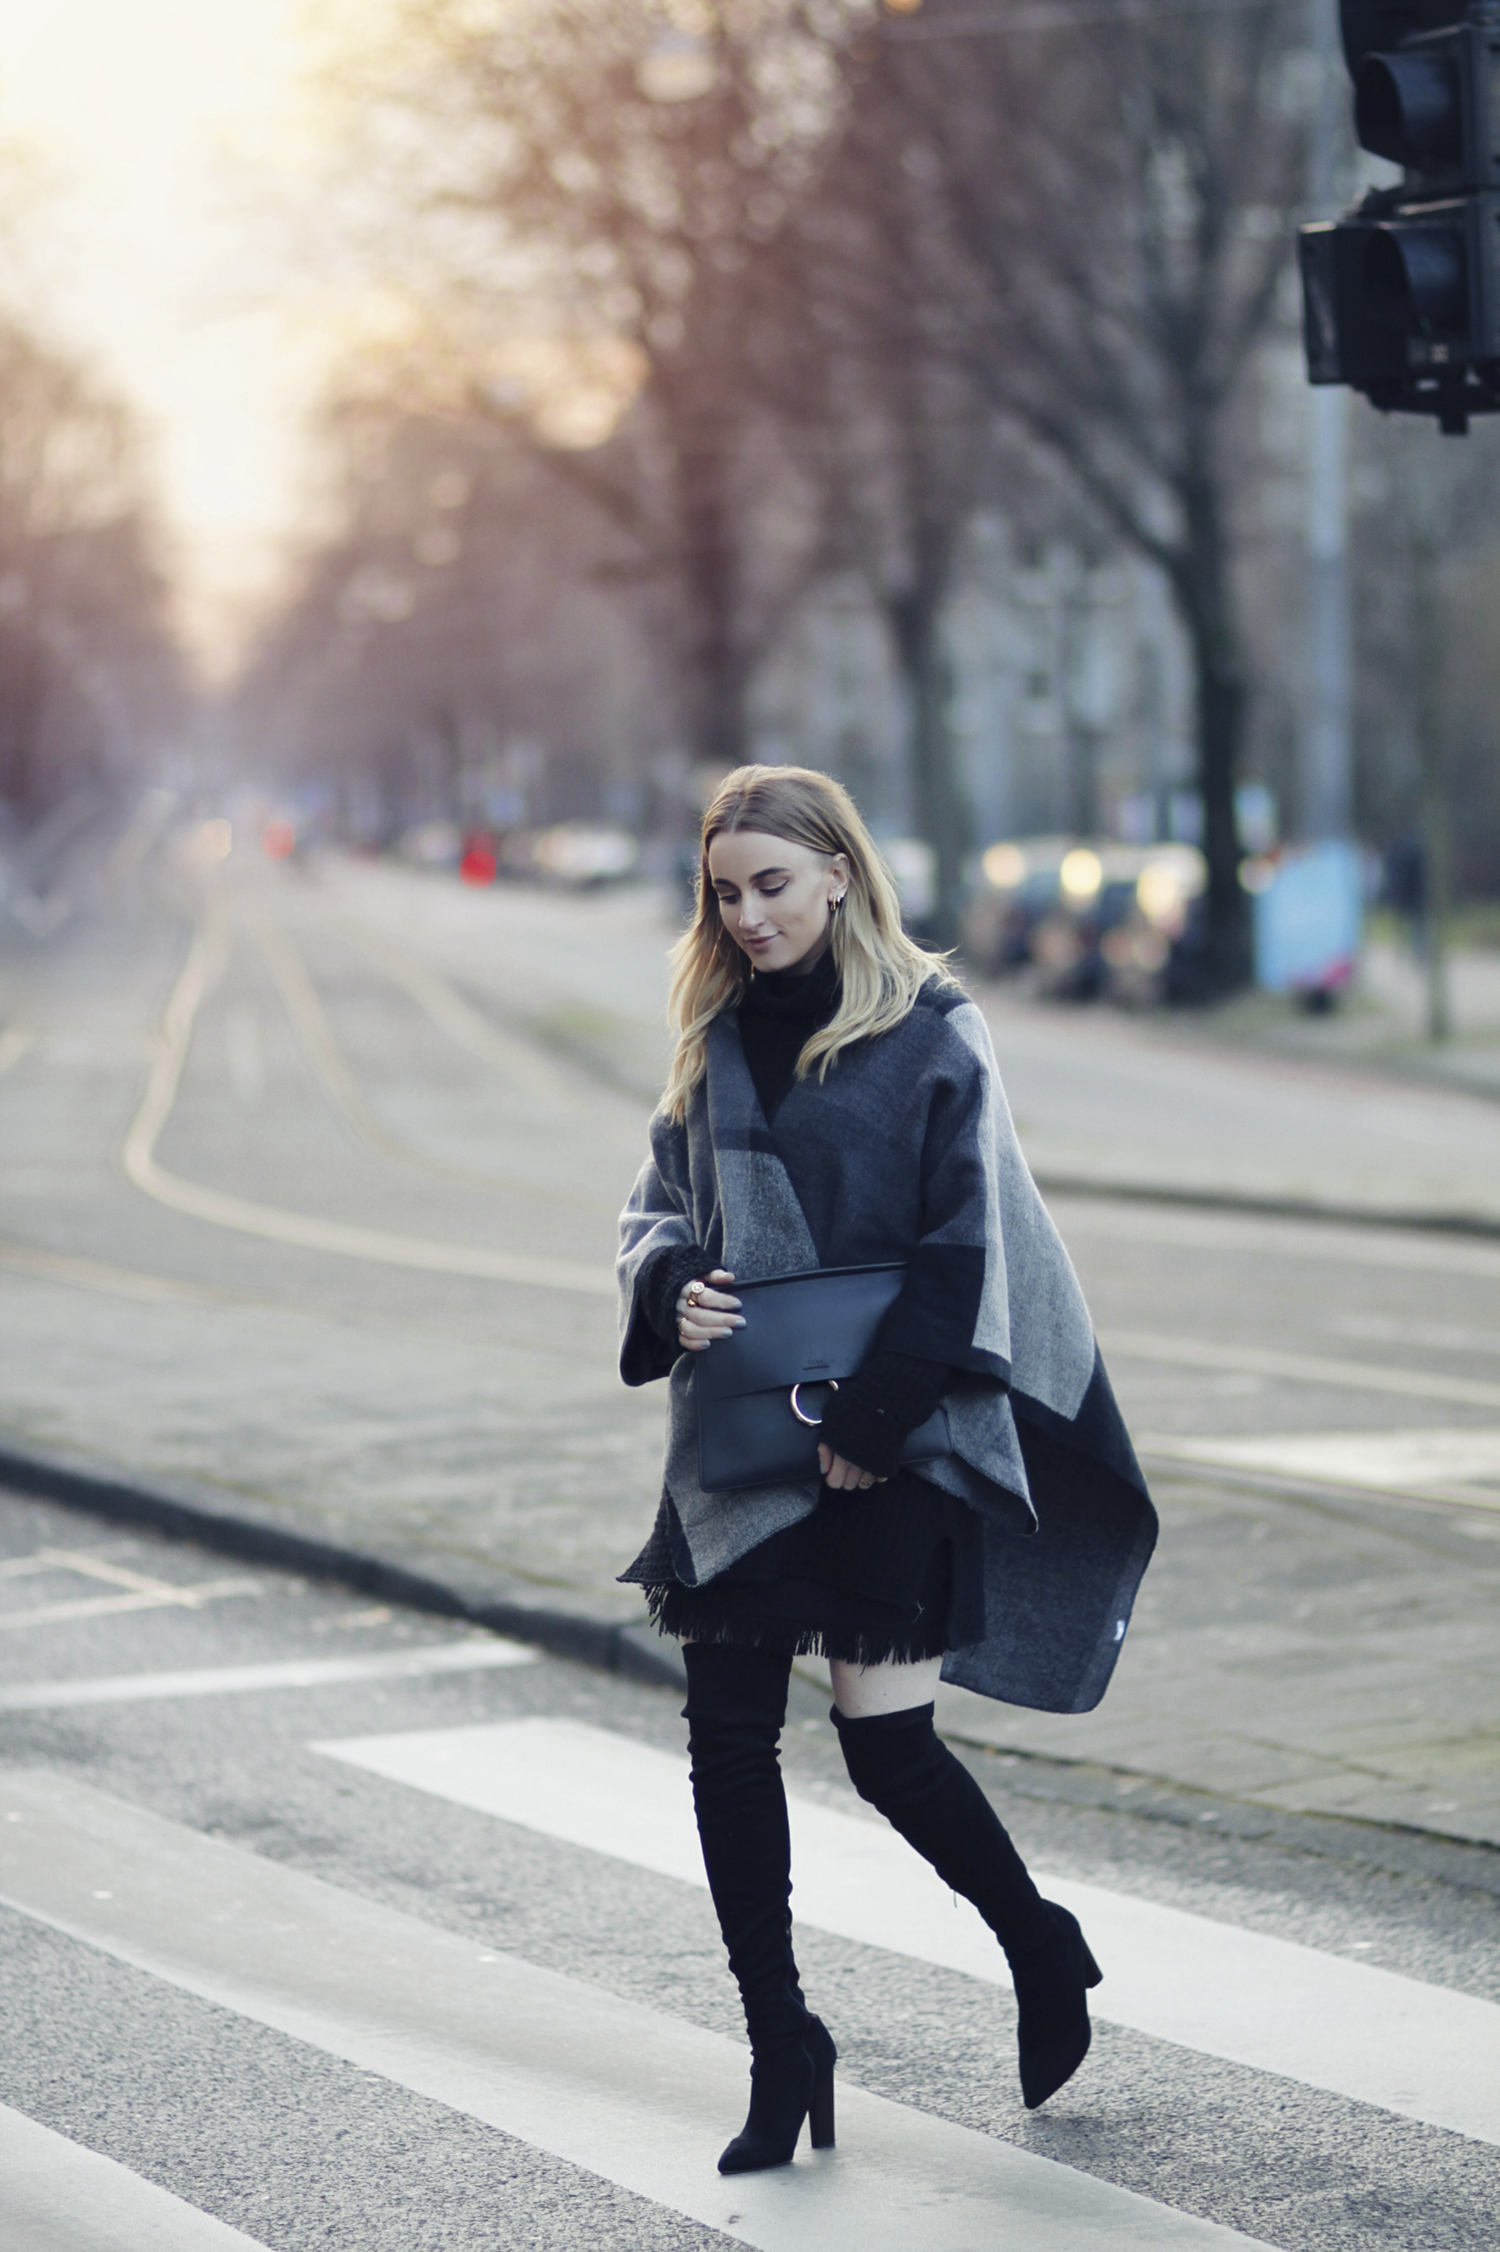 Noor De Groot is wearing thigh high boots with the poncho coat trend, in a stylish and authentic greyscale poncho which affords her an alternative and eye catching style! Boots: Public Desire, Skirt: Zara, Sweater: Baum und Pferdgarten, Poncho: Boohoo, Bag: Chloe.